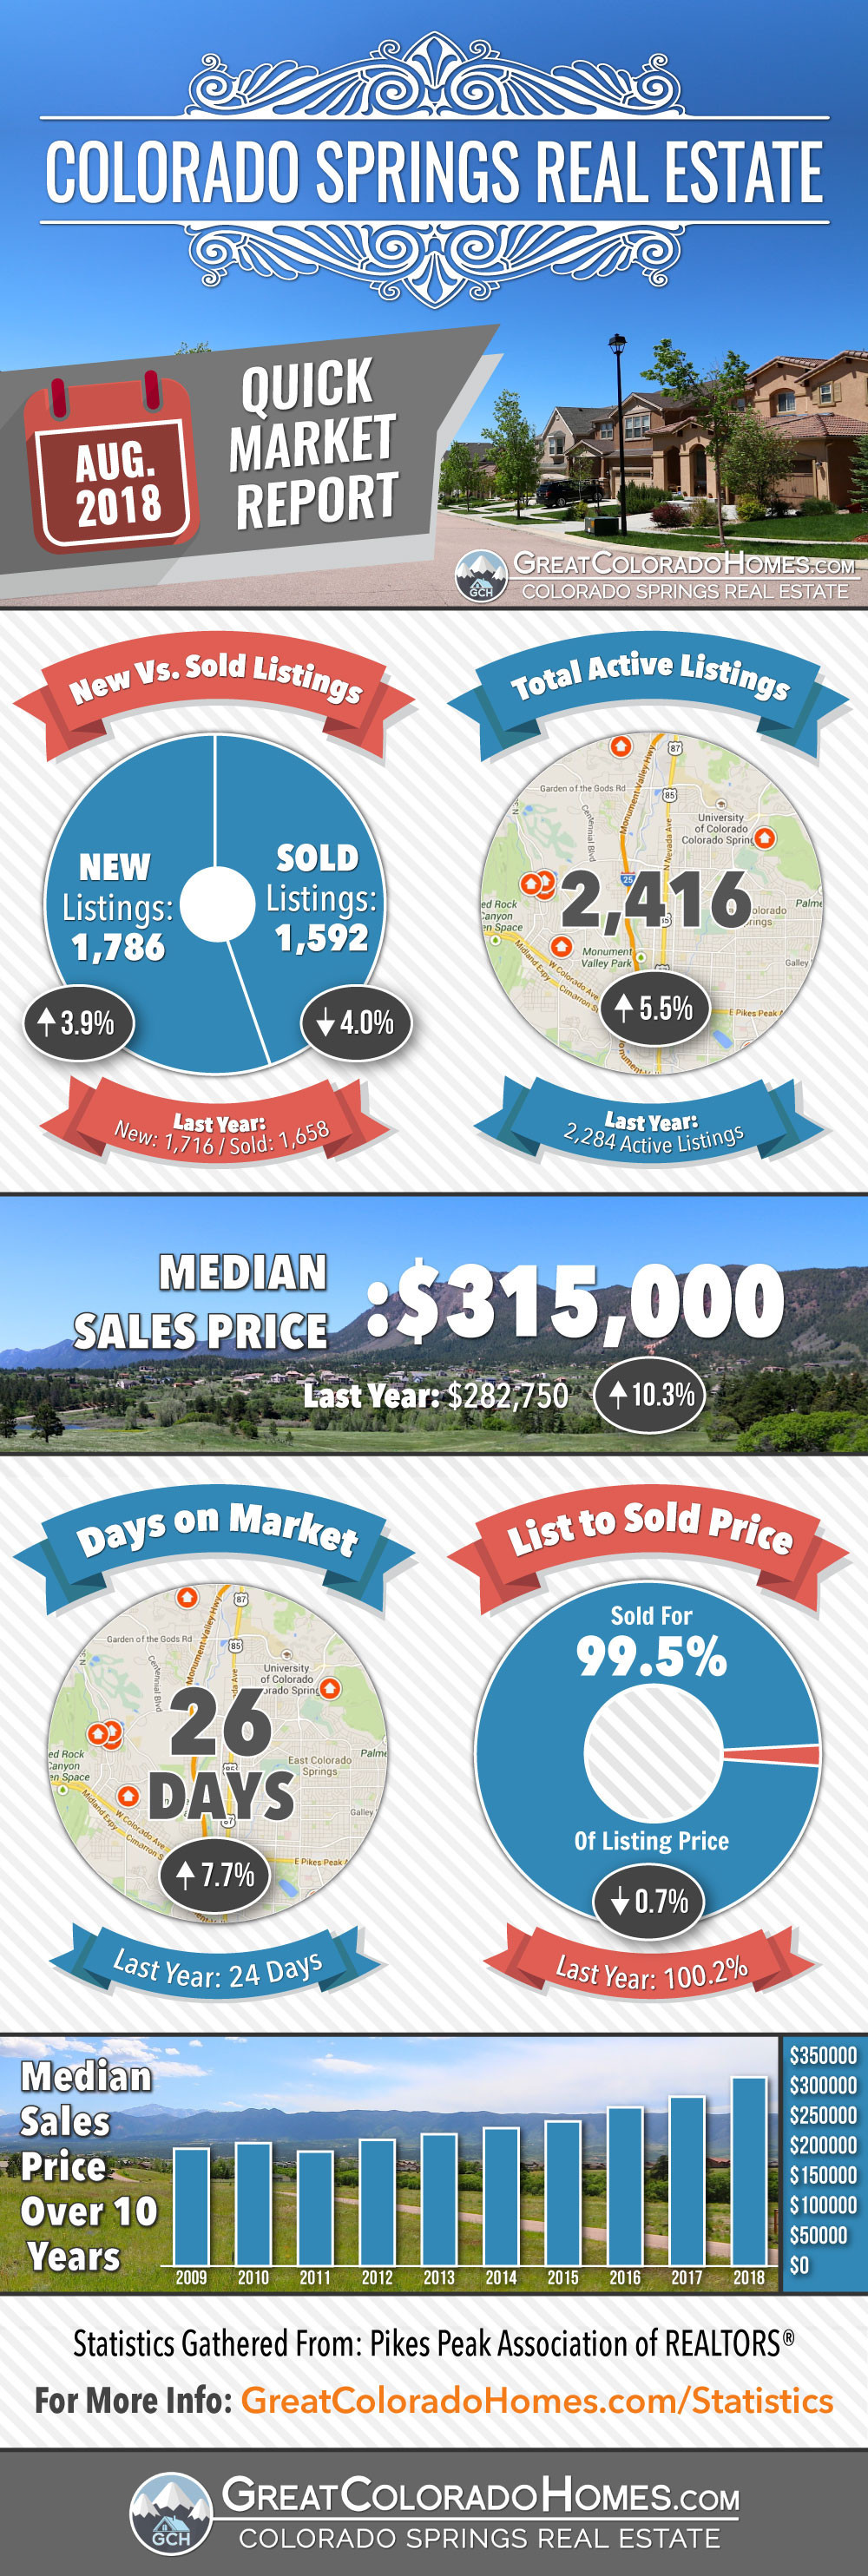 August 2018 Colorado Springs Real Estate Market Statistics Infographic